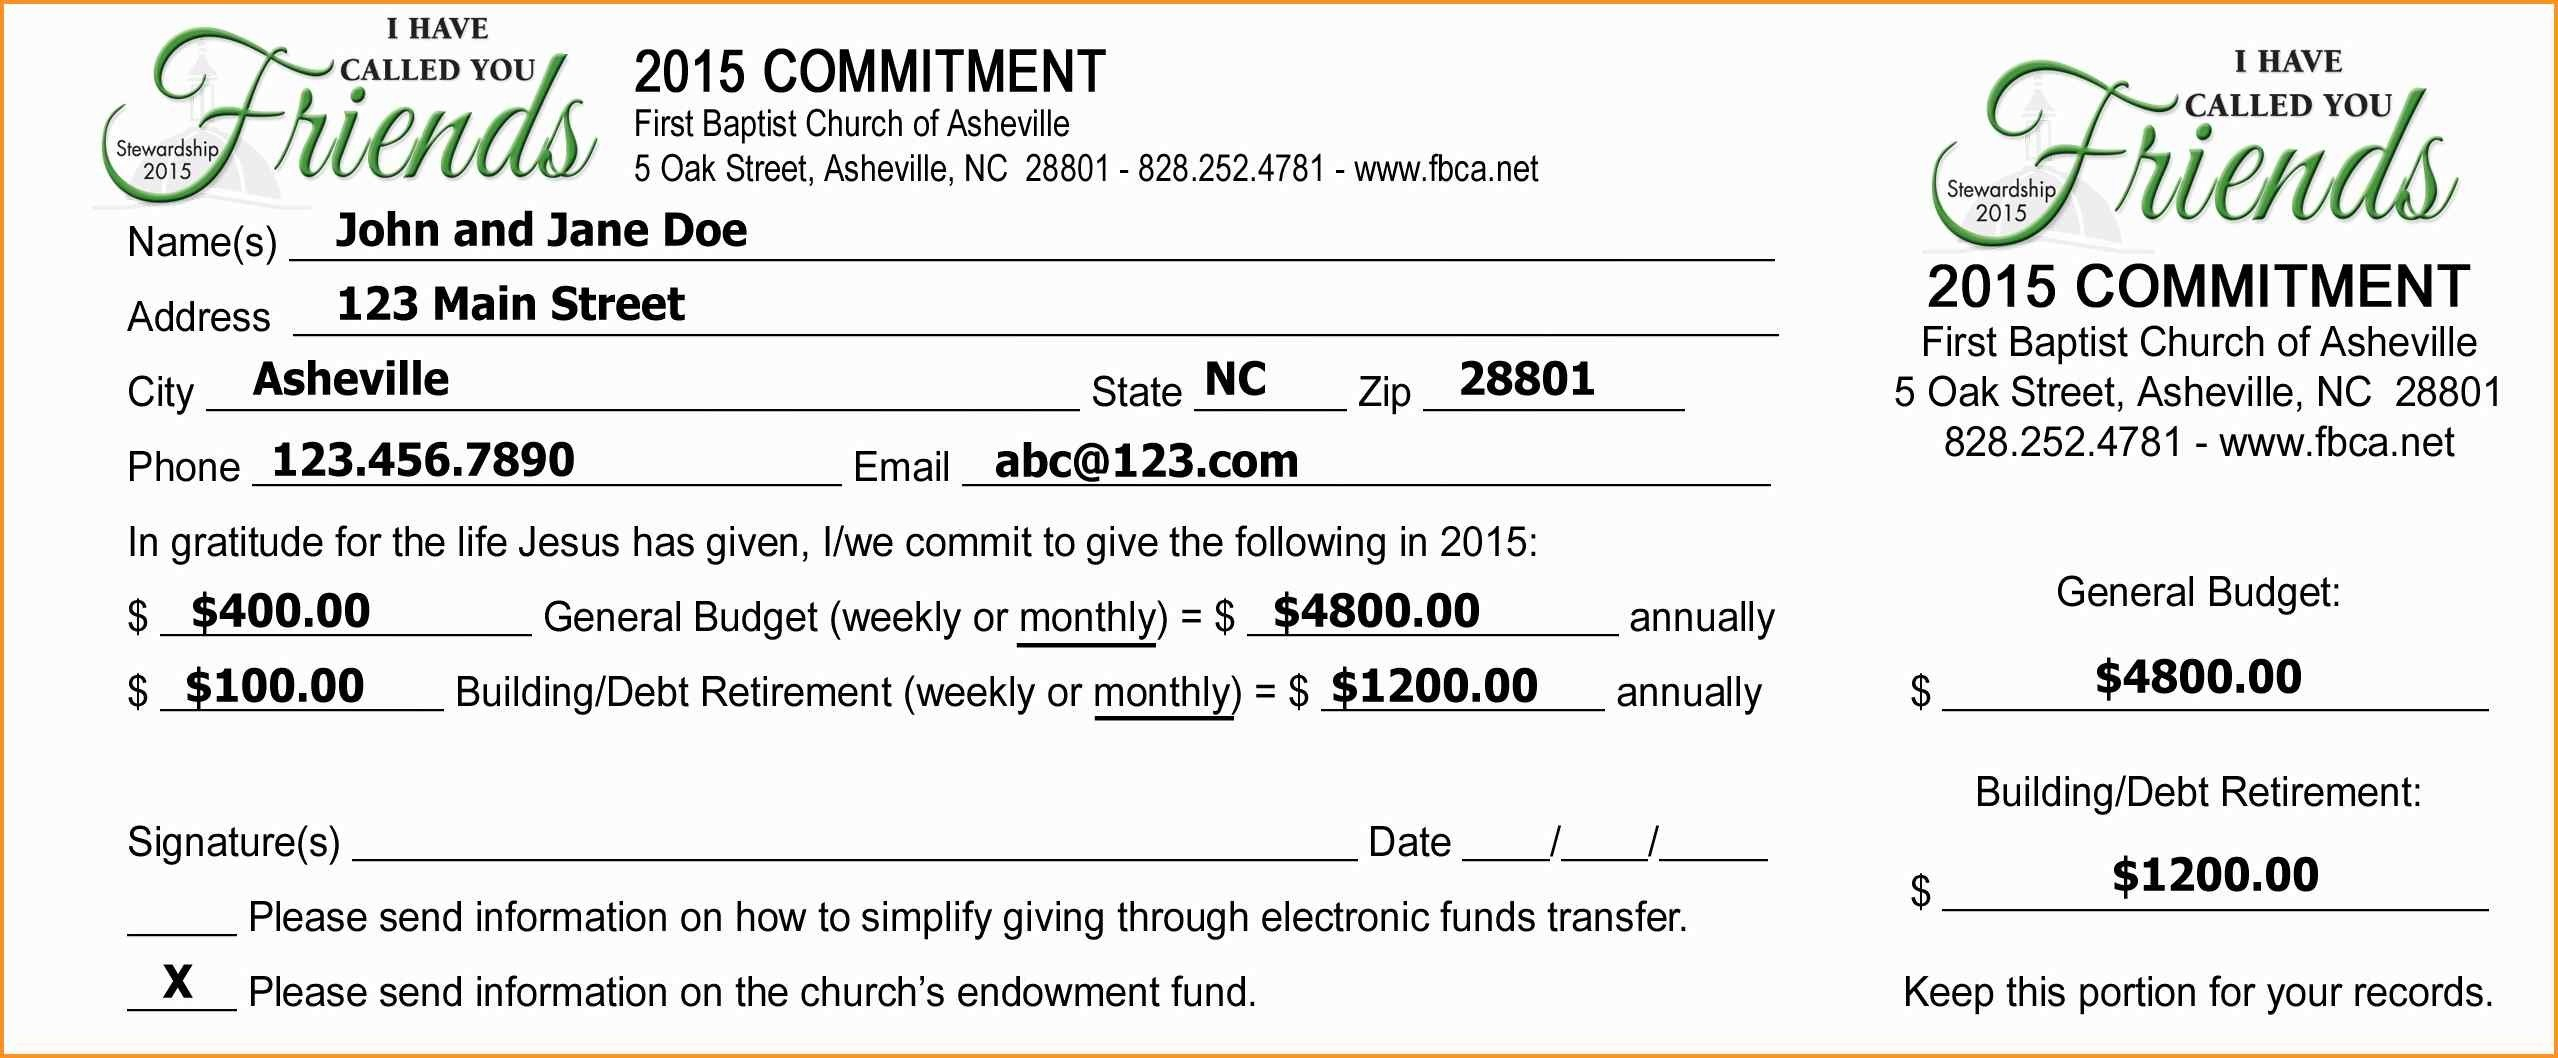 Pledge Cards Template Free Card Donation Excel Templates For Church Pertaining To Building Fund Pledge Card Template